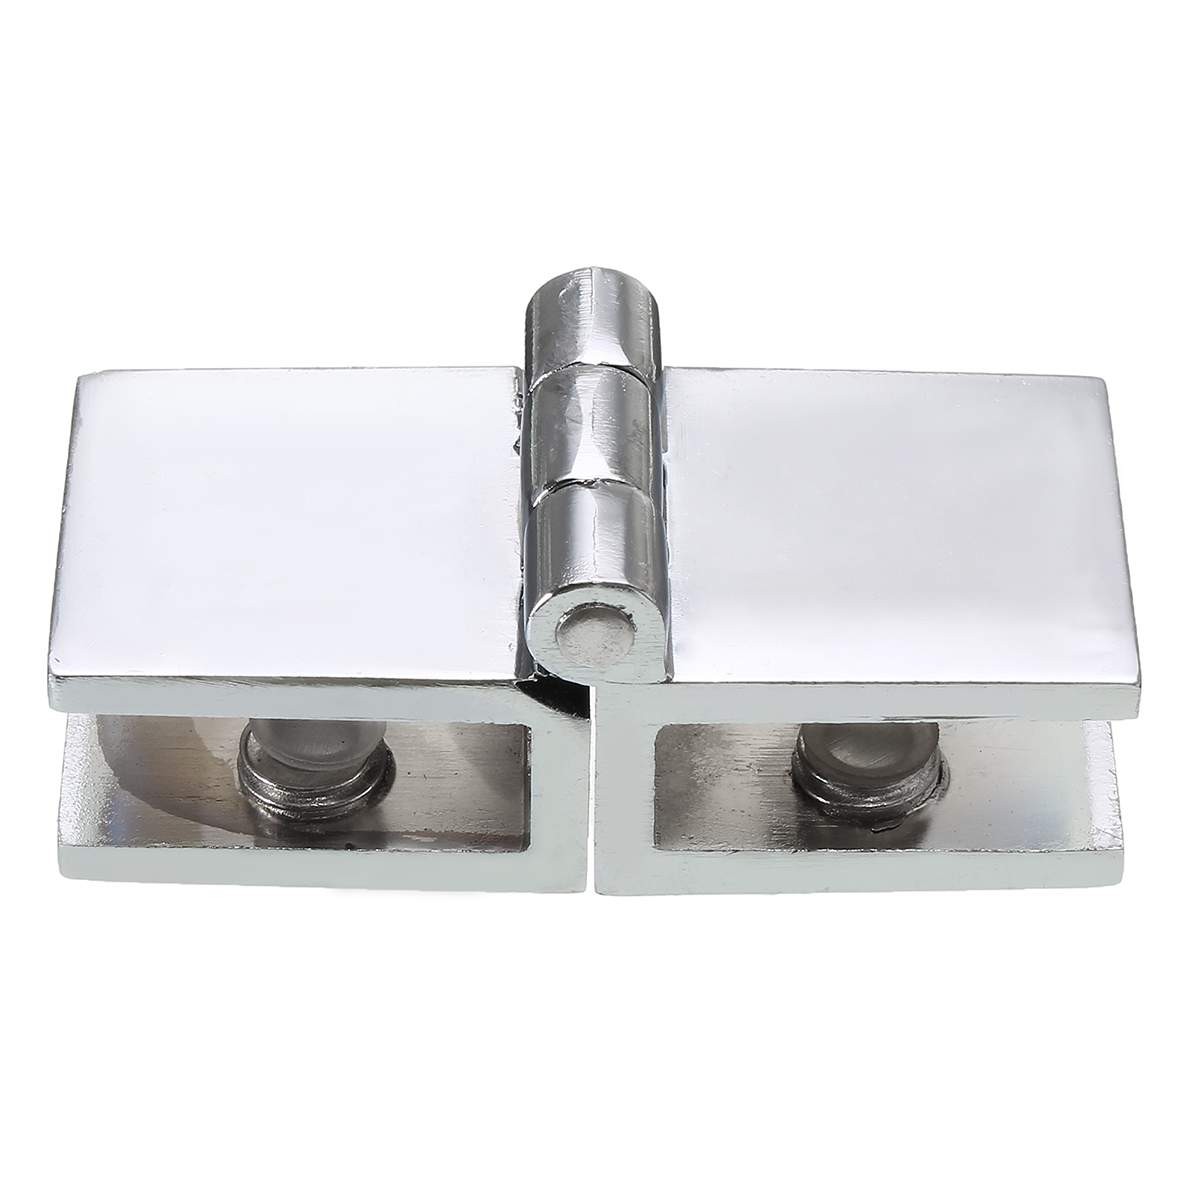 180 Degree Clamp Hinge Double Action for 5-8mm Glass Door Cupboard Cabinet